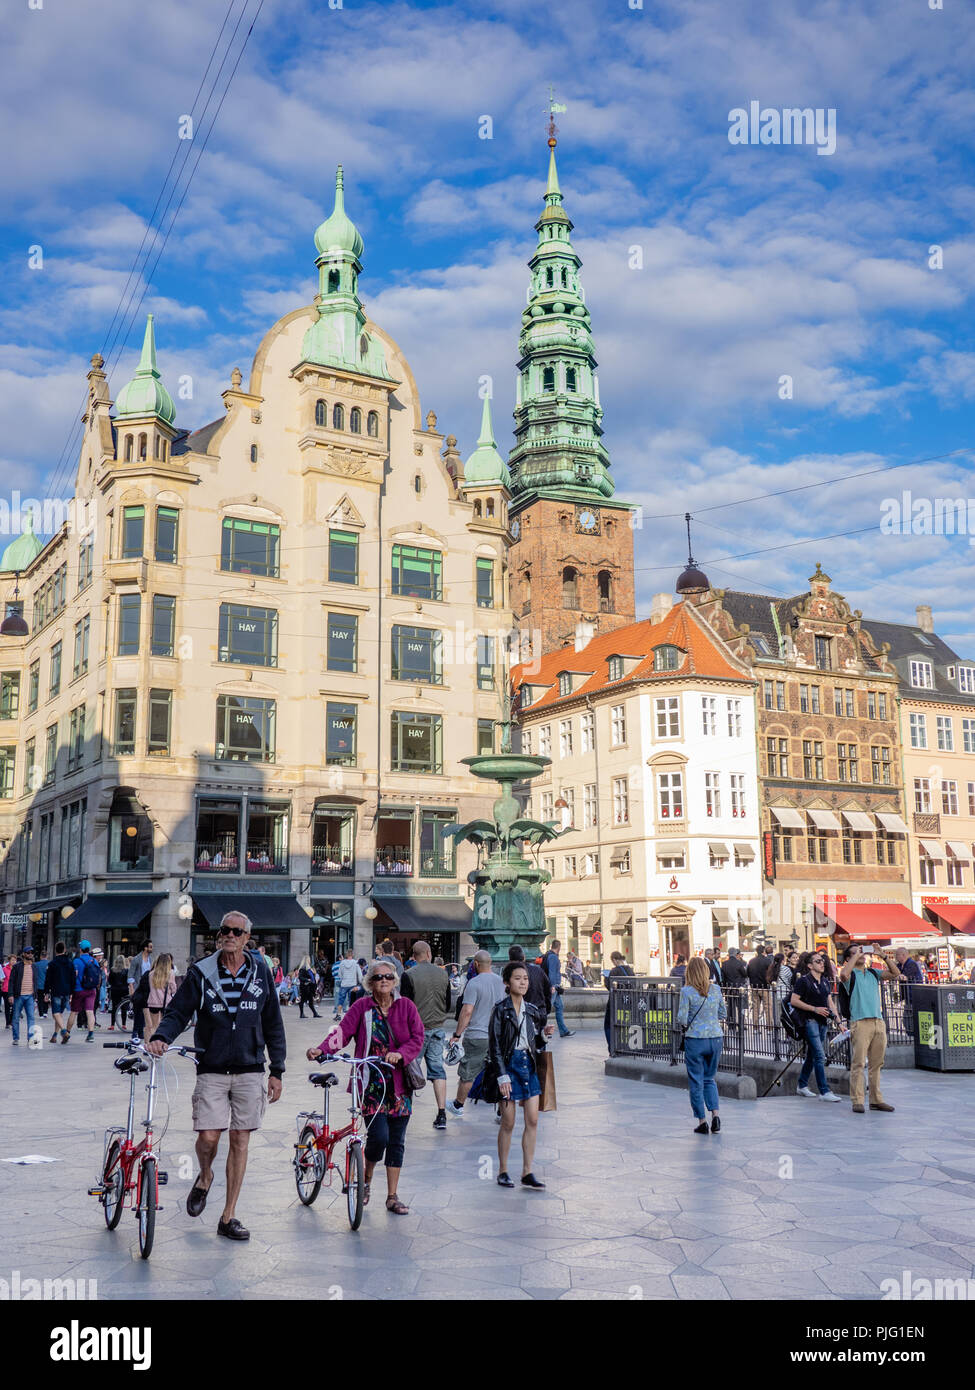 People walking through Amagertorv (English: Amager Square), a central square in the Strøget pedestrian zone in Copenhagen, Denmark. - Stock Image